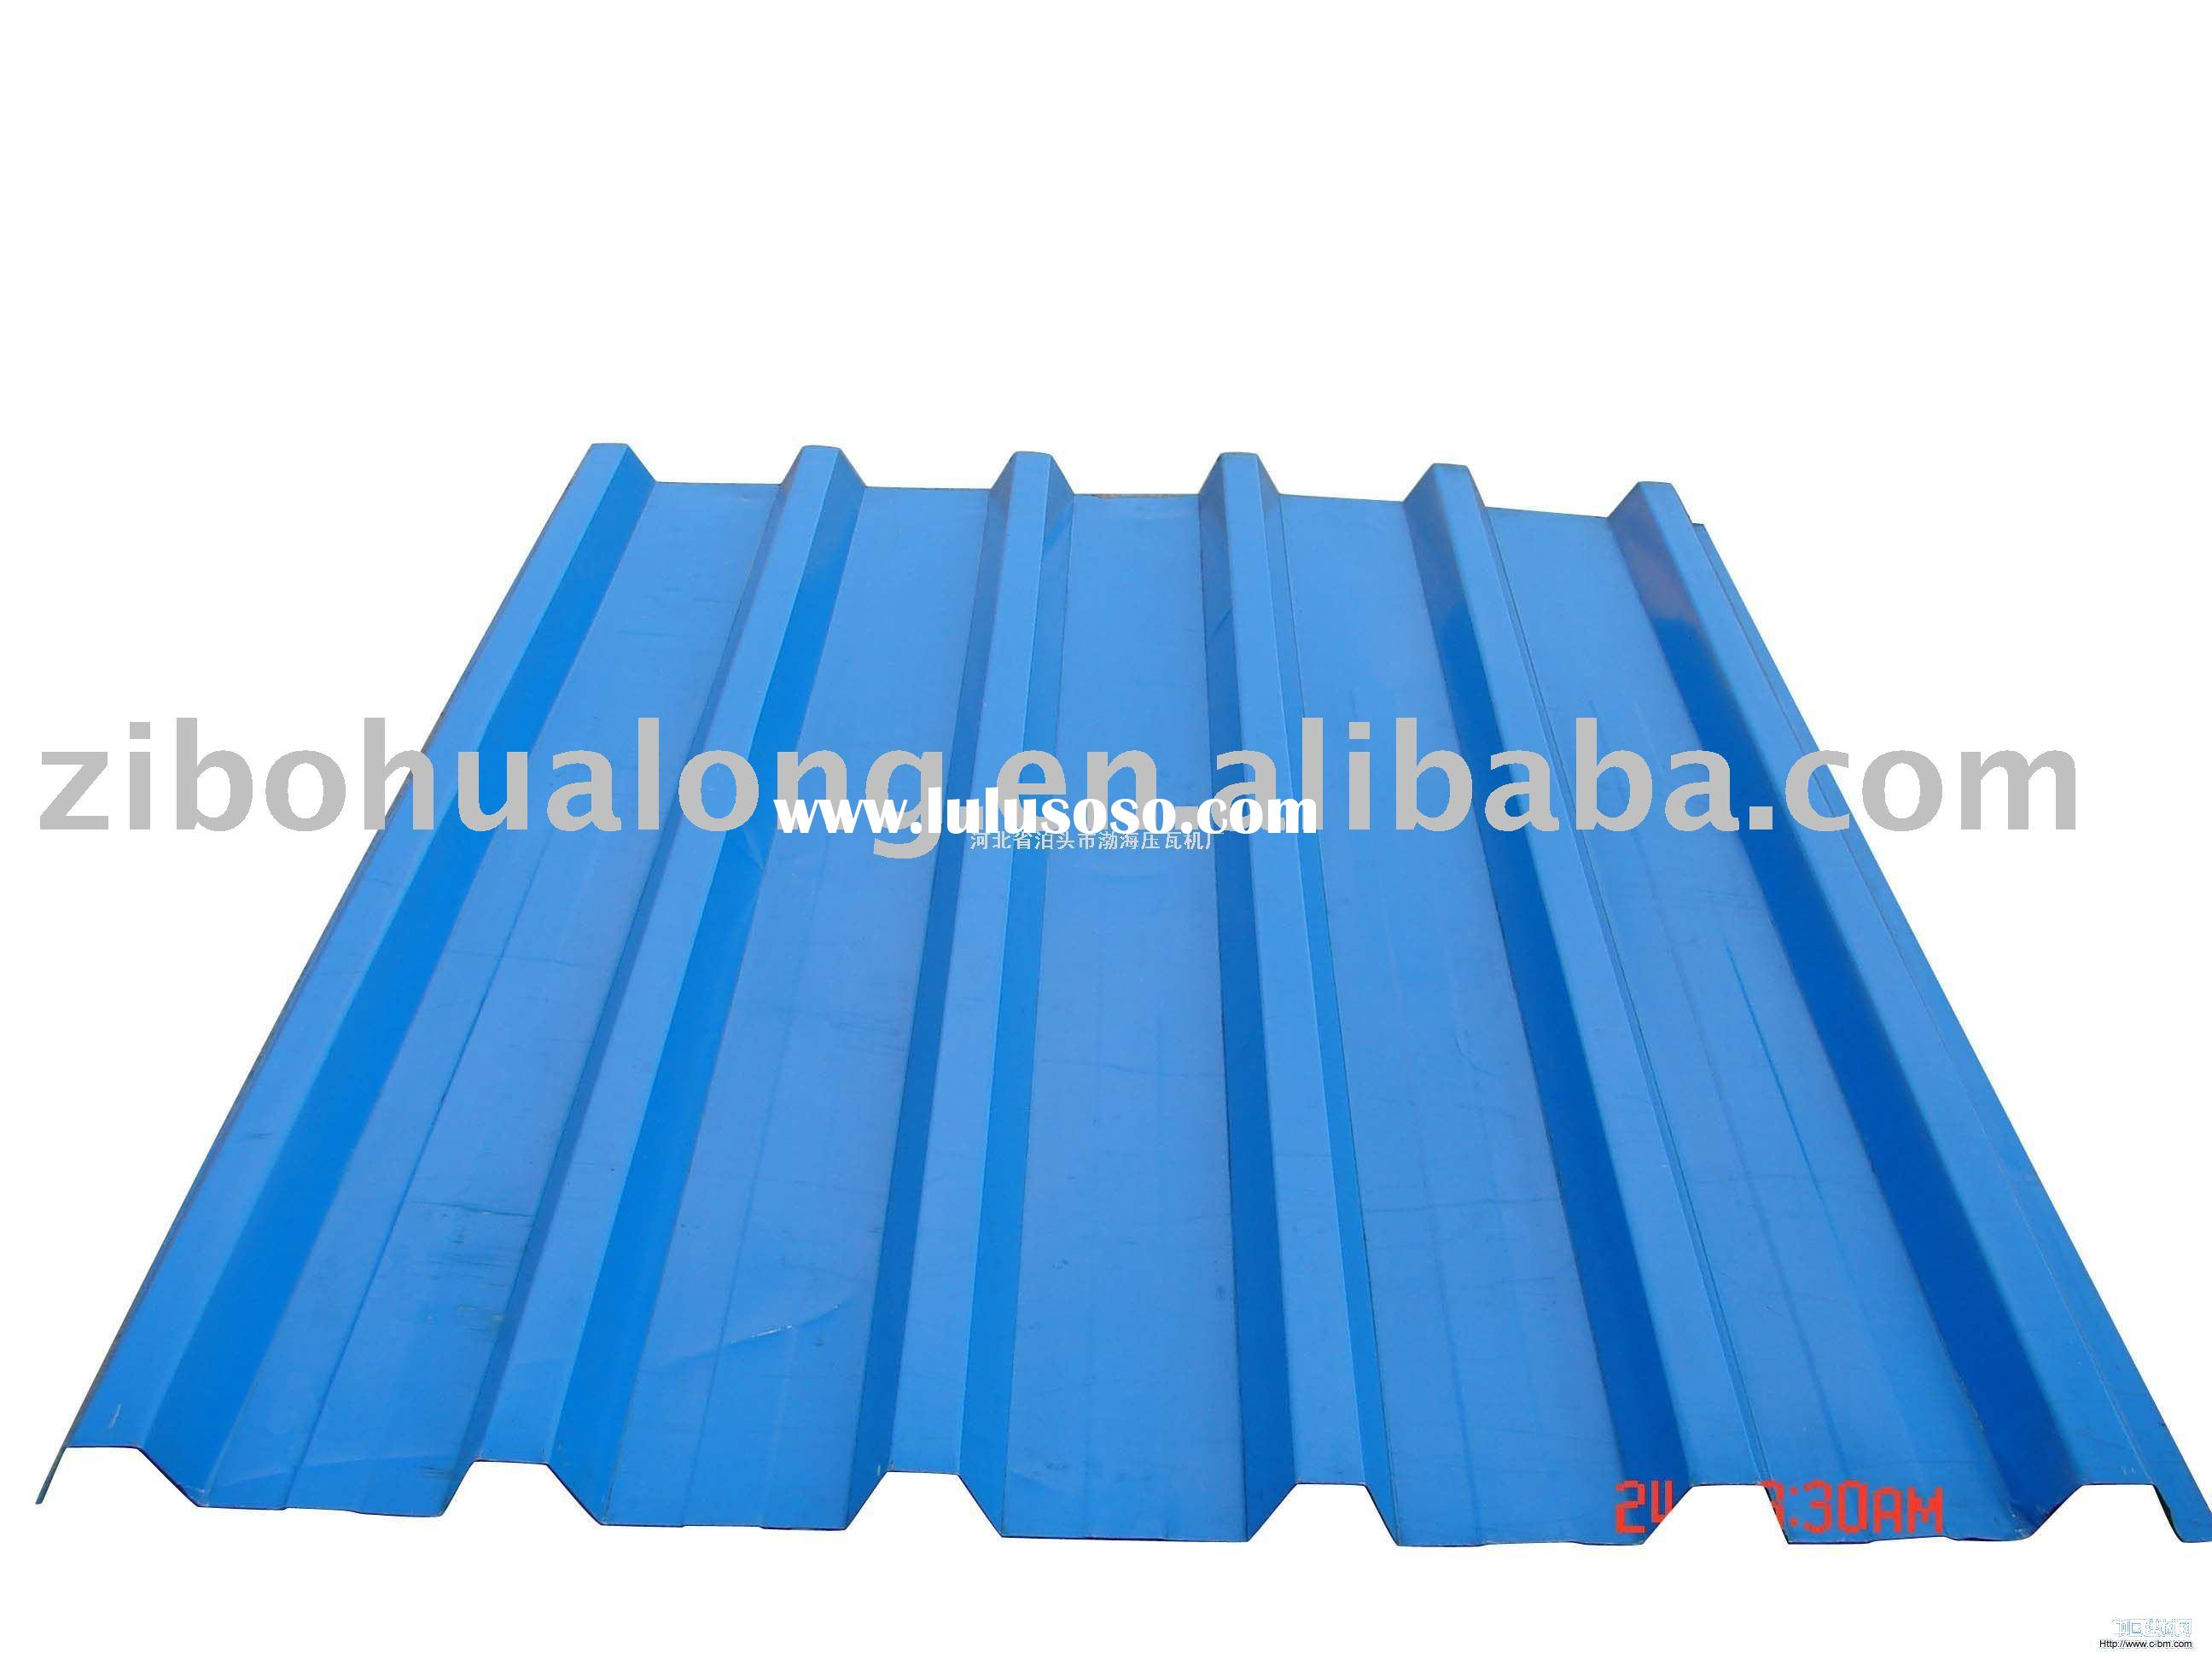 Zinc coated metal sheet